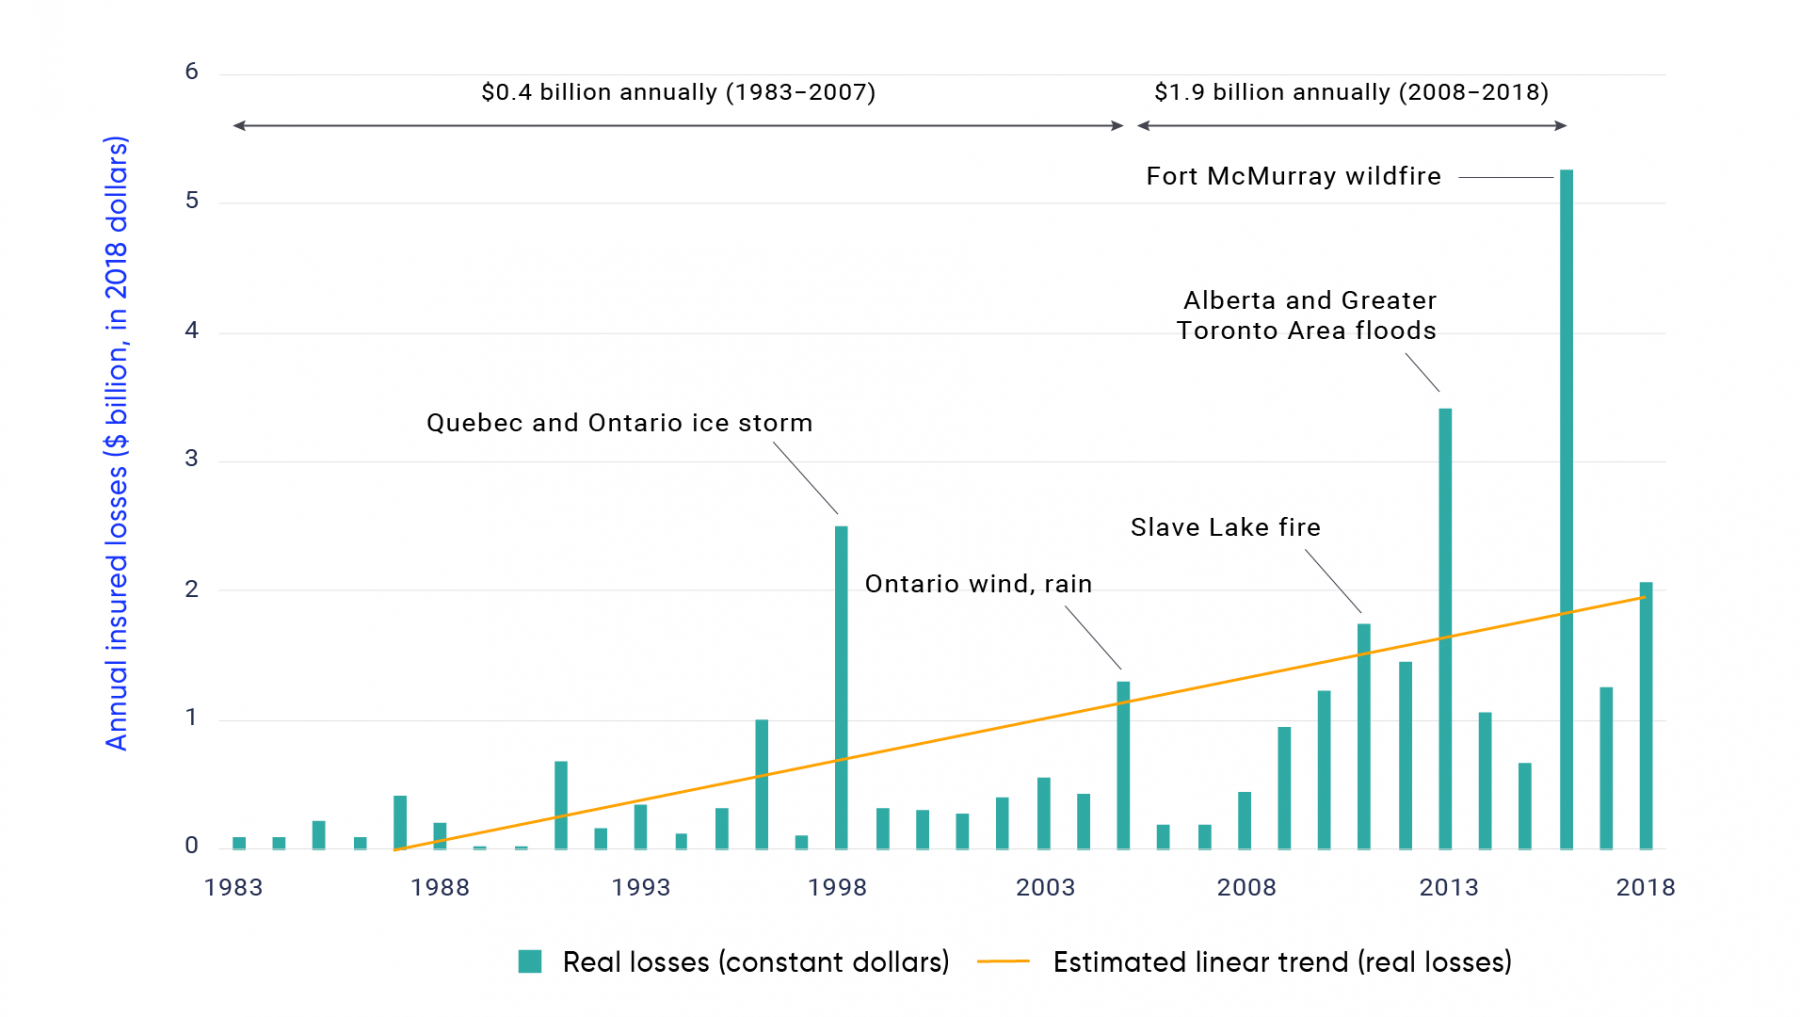 Bar graph shows annual insured losses plus adjustment expenses (in 2018 dollars) from extreme weather events in Canada over the period 1983 to 2018. The height of the bars shows the total losses plus expenses from all extreme weather-related events in each year. Real losses spiked to 2.494 billion dollars in 1998 due to the Quebec and Ontario ice storm, 1.3 billion dollars in 2005 due to wind and rain events in Ontario, 1.74 billion dollars in 2011 due to the Slave Lake Fire, 3.418 billion dollars in 2013 due to the Alberta and Greater Toronto Area floods, and 5.261 billion dollars in 2016 due to the Fort McMurray wildfire. The solid yellow line shows the estimated upward trend in insured losses plus adjustment expenses. The line begins at 0 in 1997 and reaches approximately 2 billion dollars by 2018.